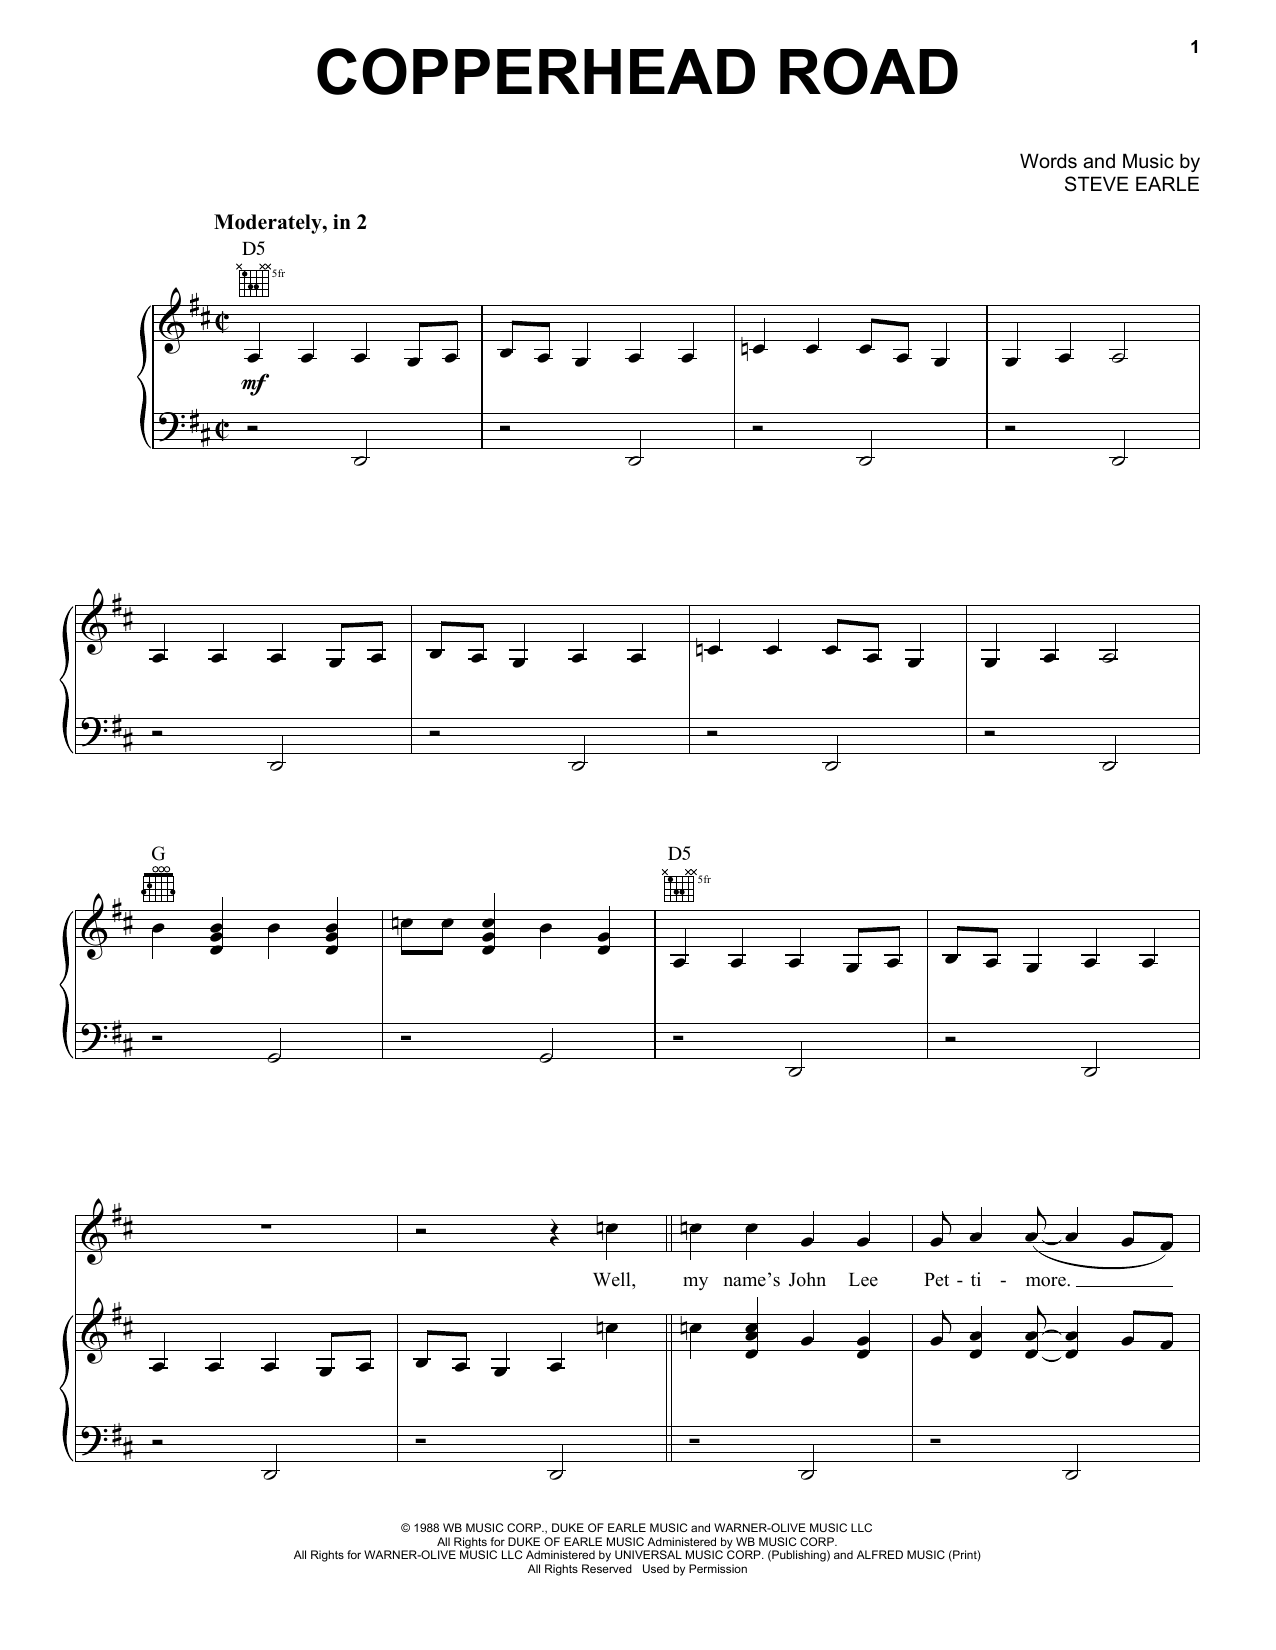 Copperhead Road Sheet Music   Steve Earle   Piano, Vocal & Guitar  Right Hand Melody